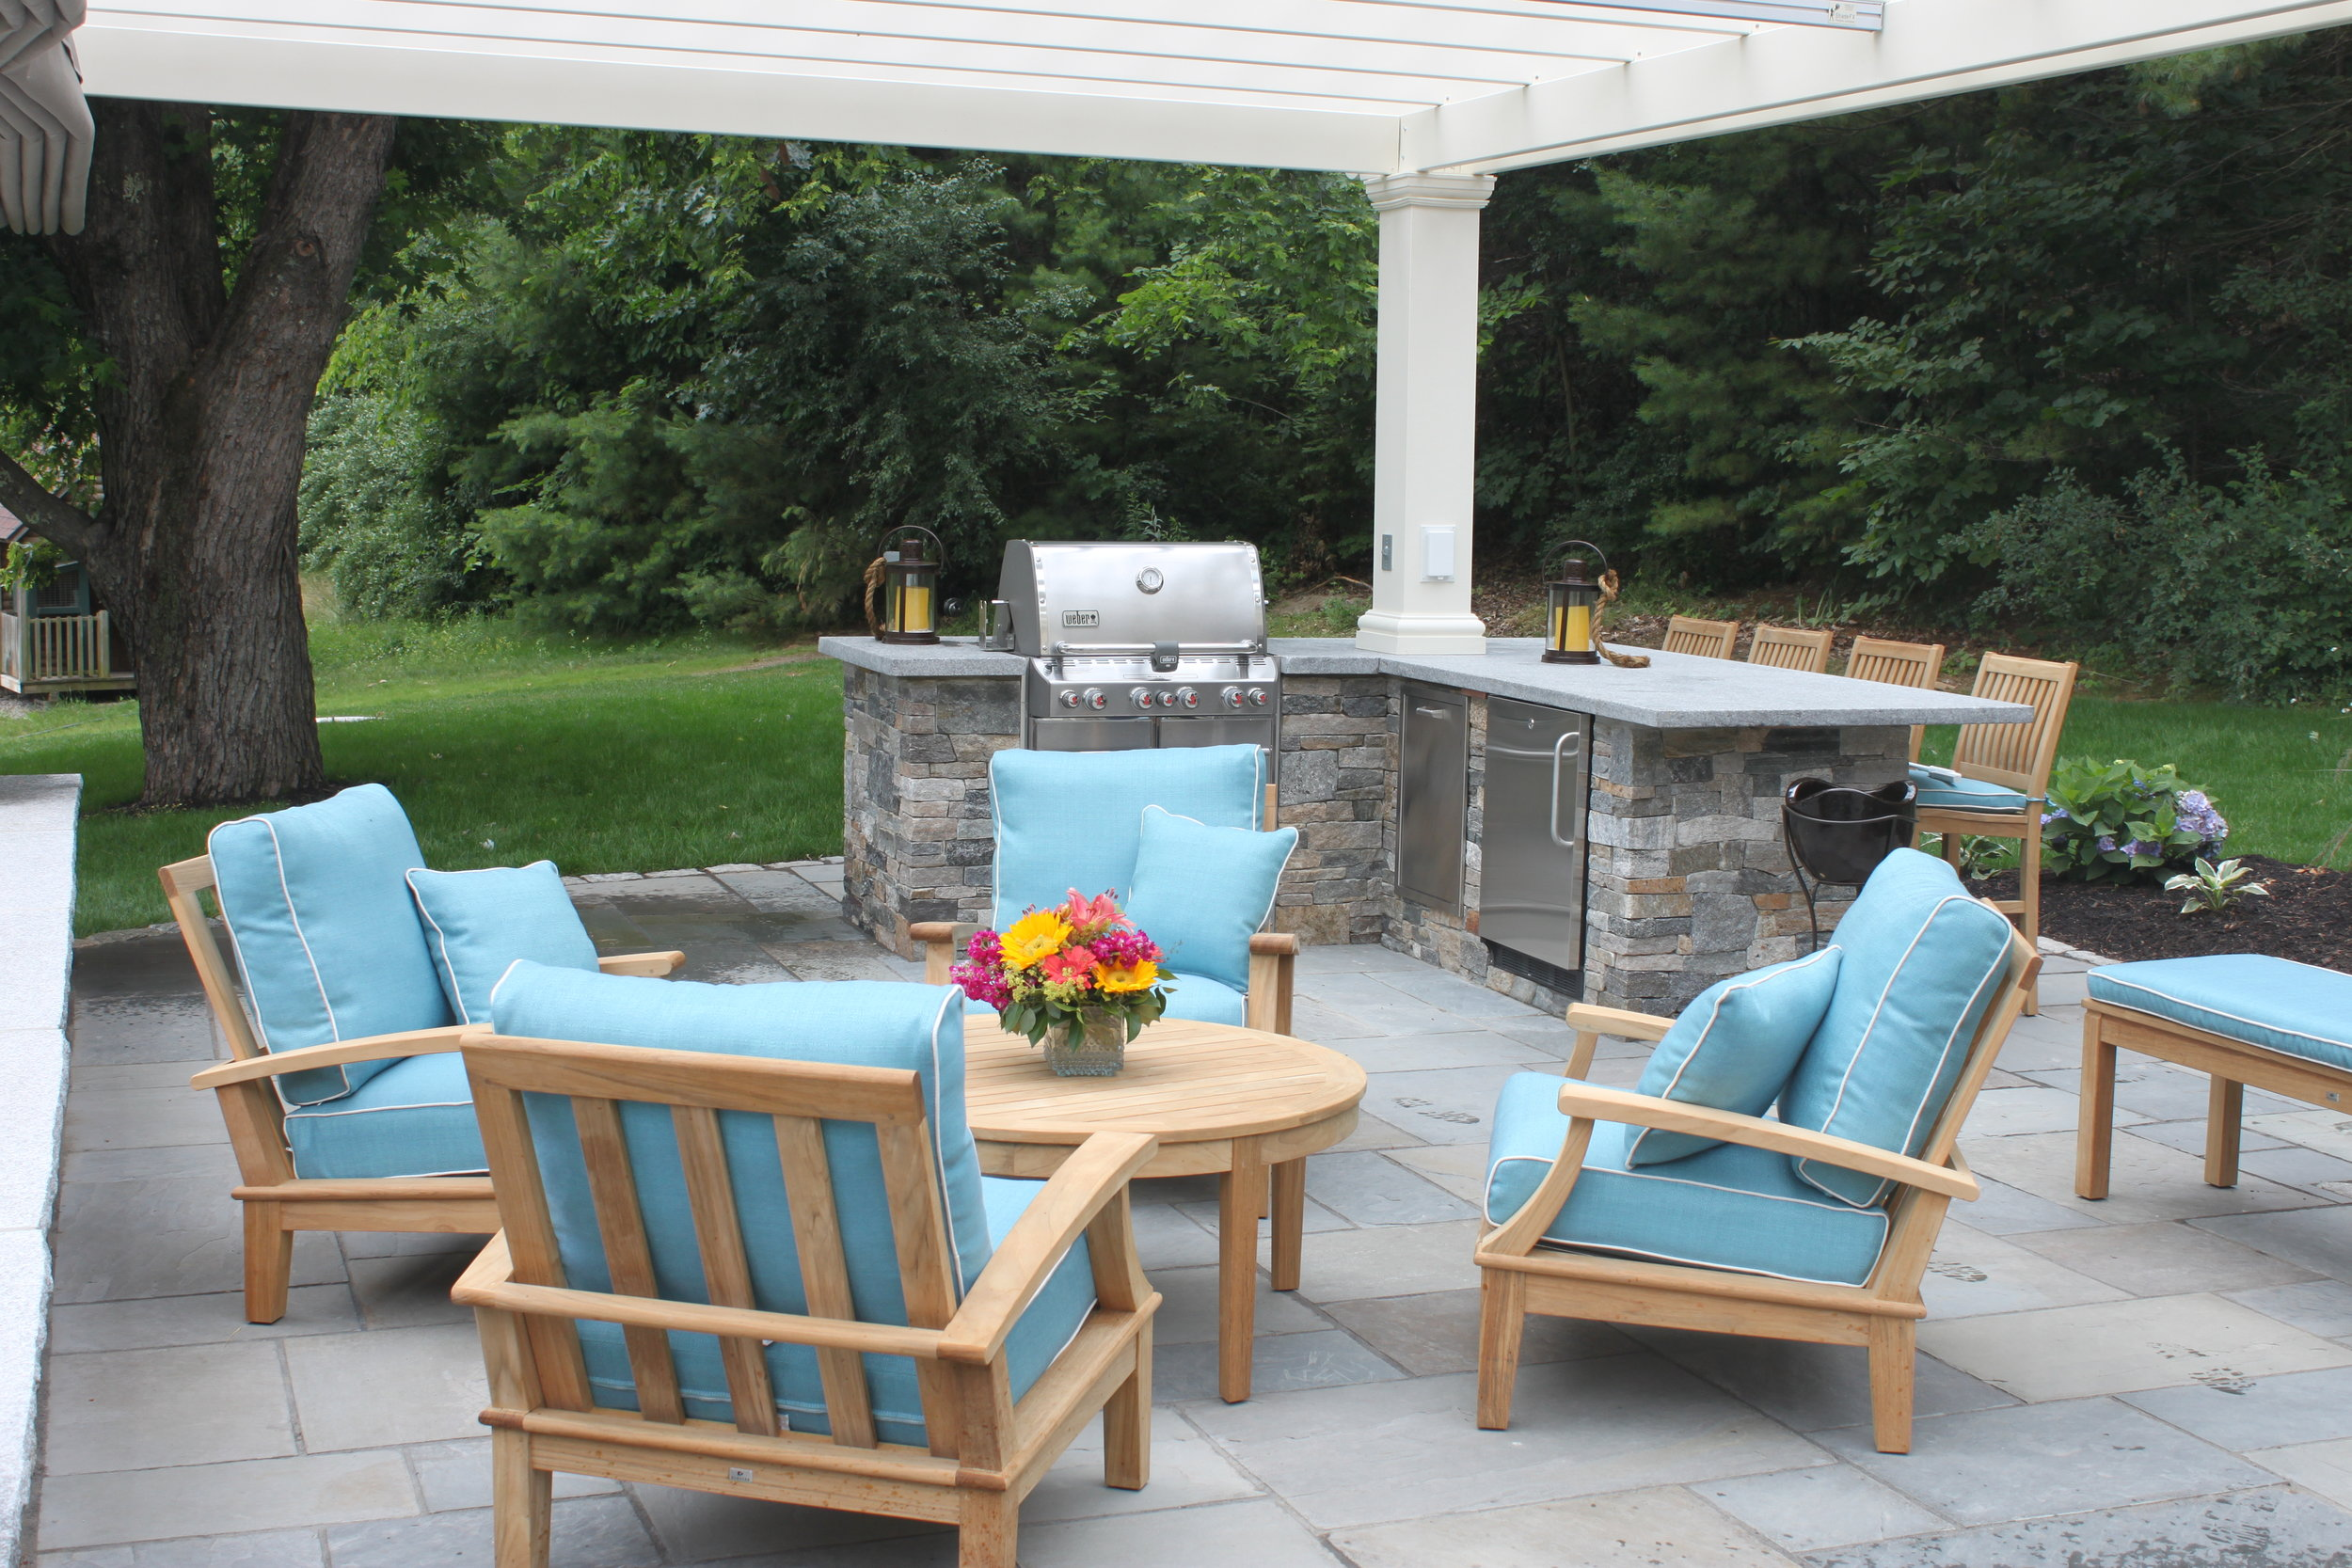 How Can a Landscaper Turn Your Backyard into an Inviting Outdoor Room in Lexington, MA